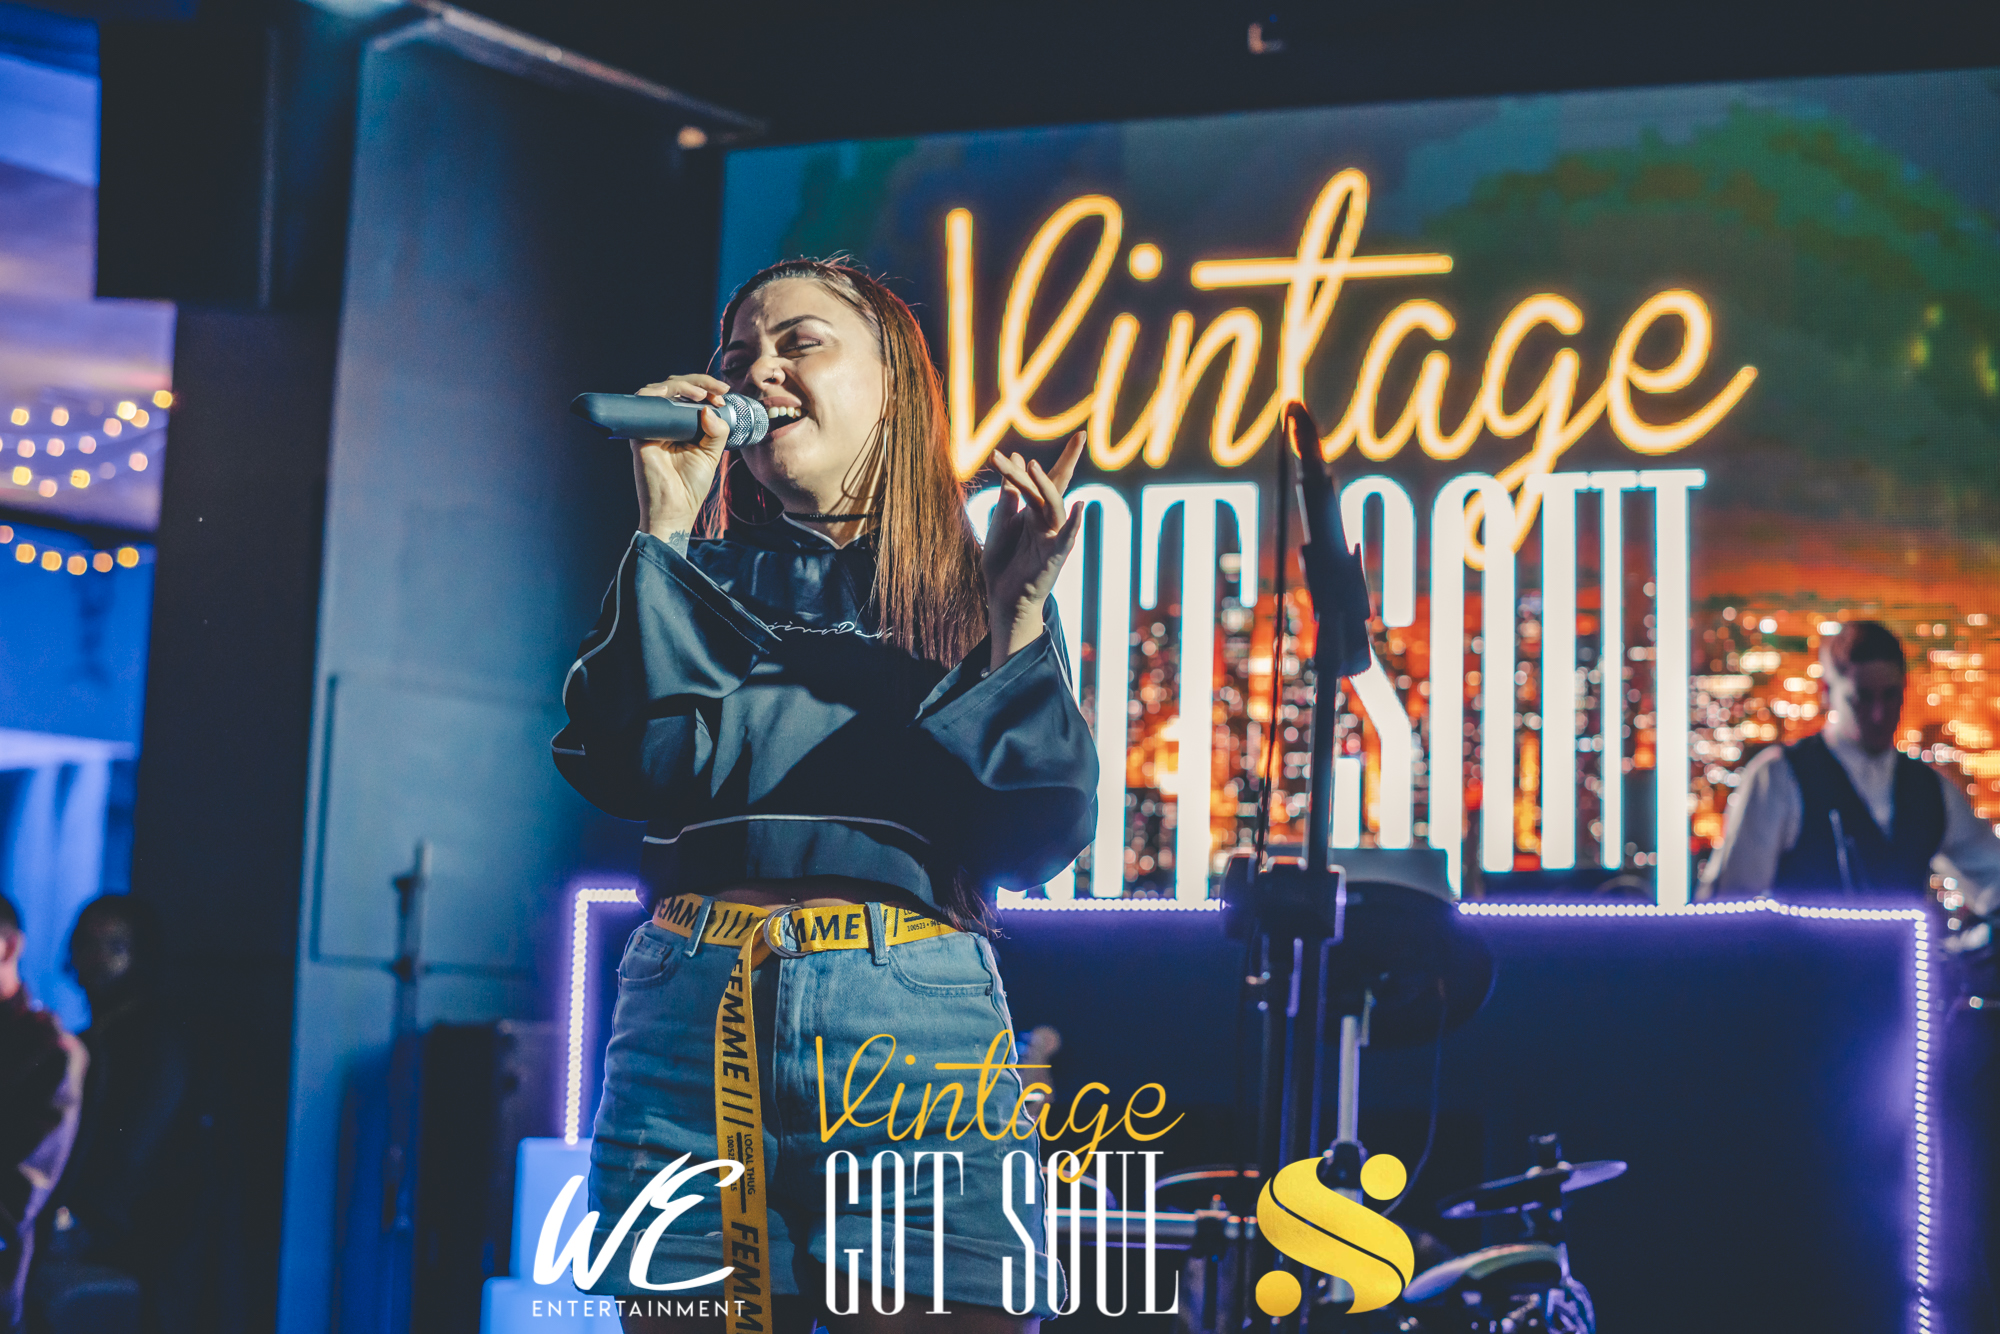 Vintage Got Soul: Live Soul Music Event @ SERVE Birmingham